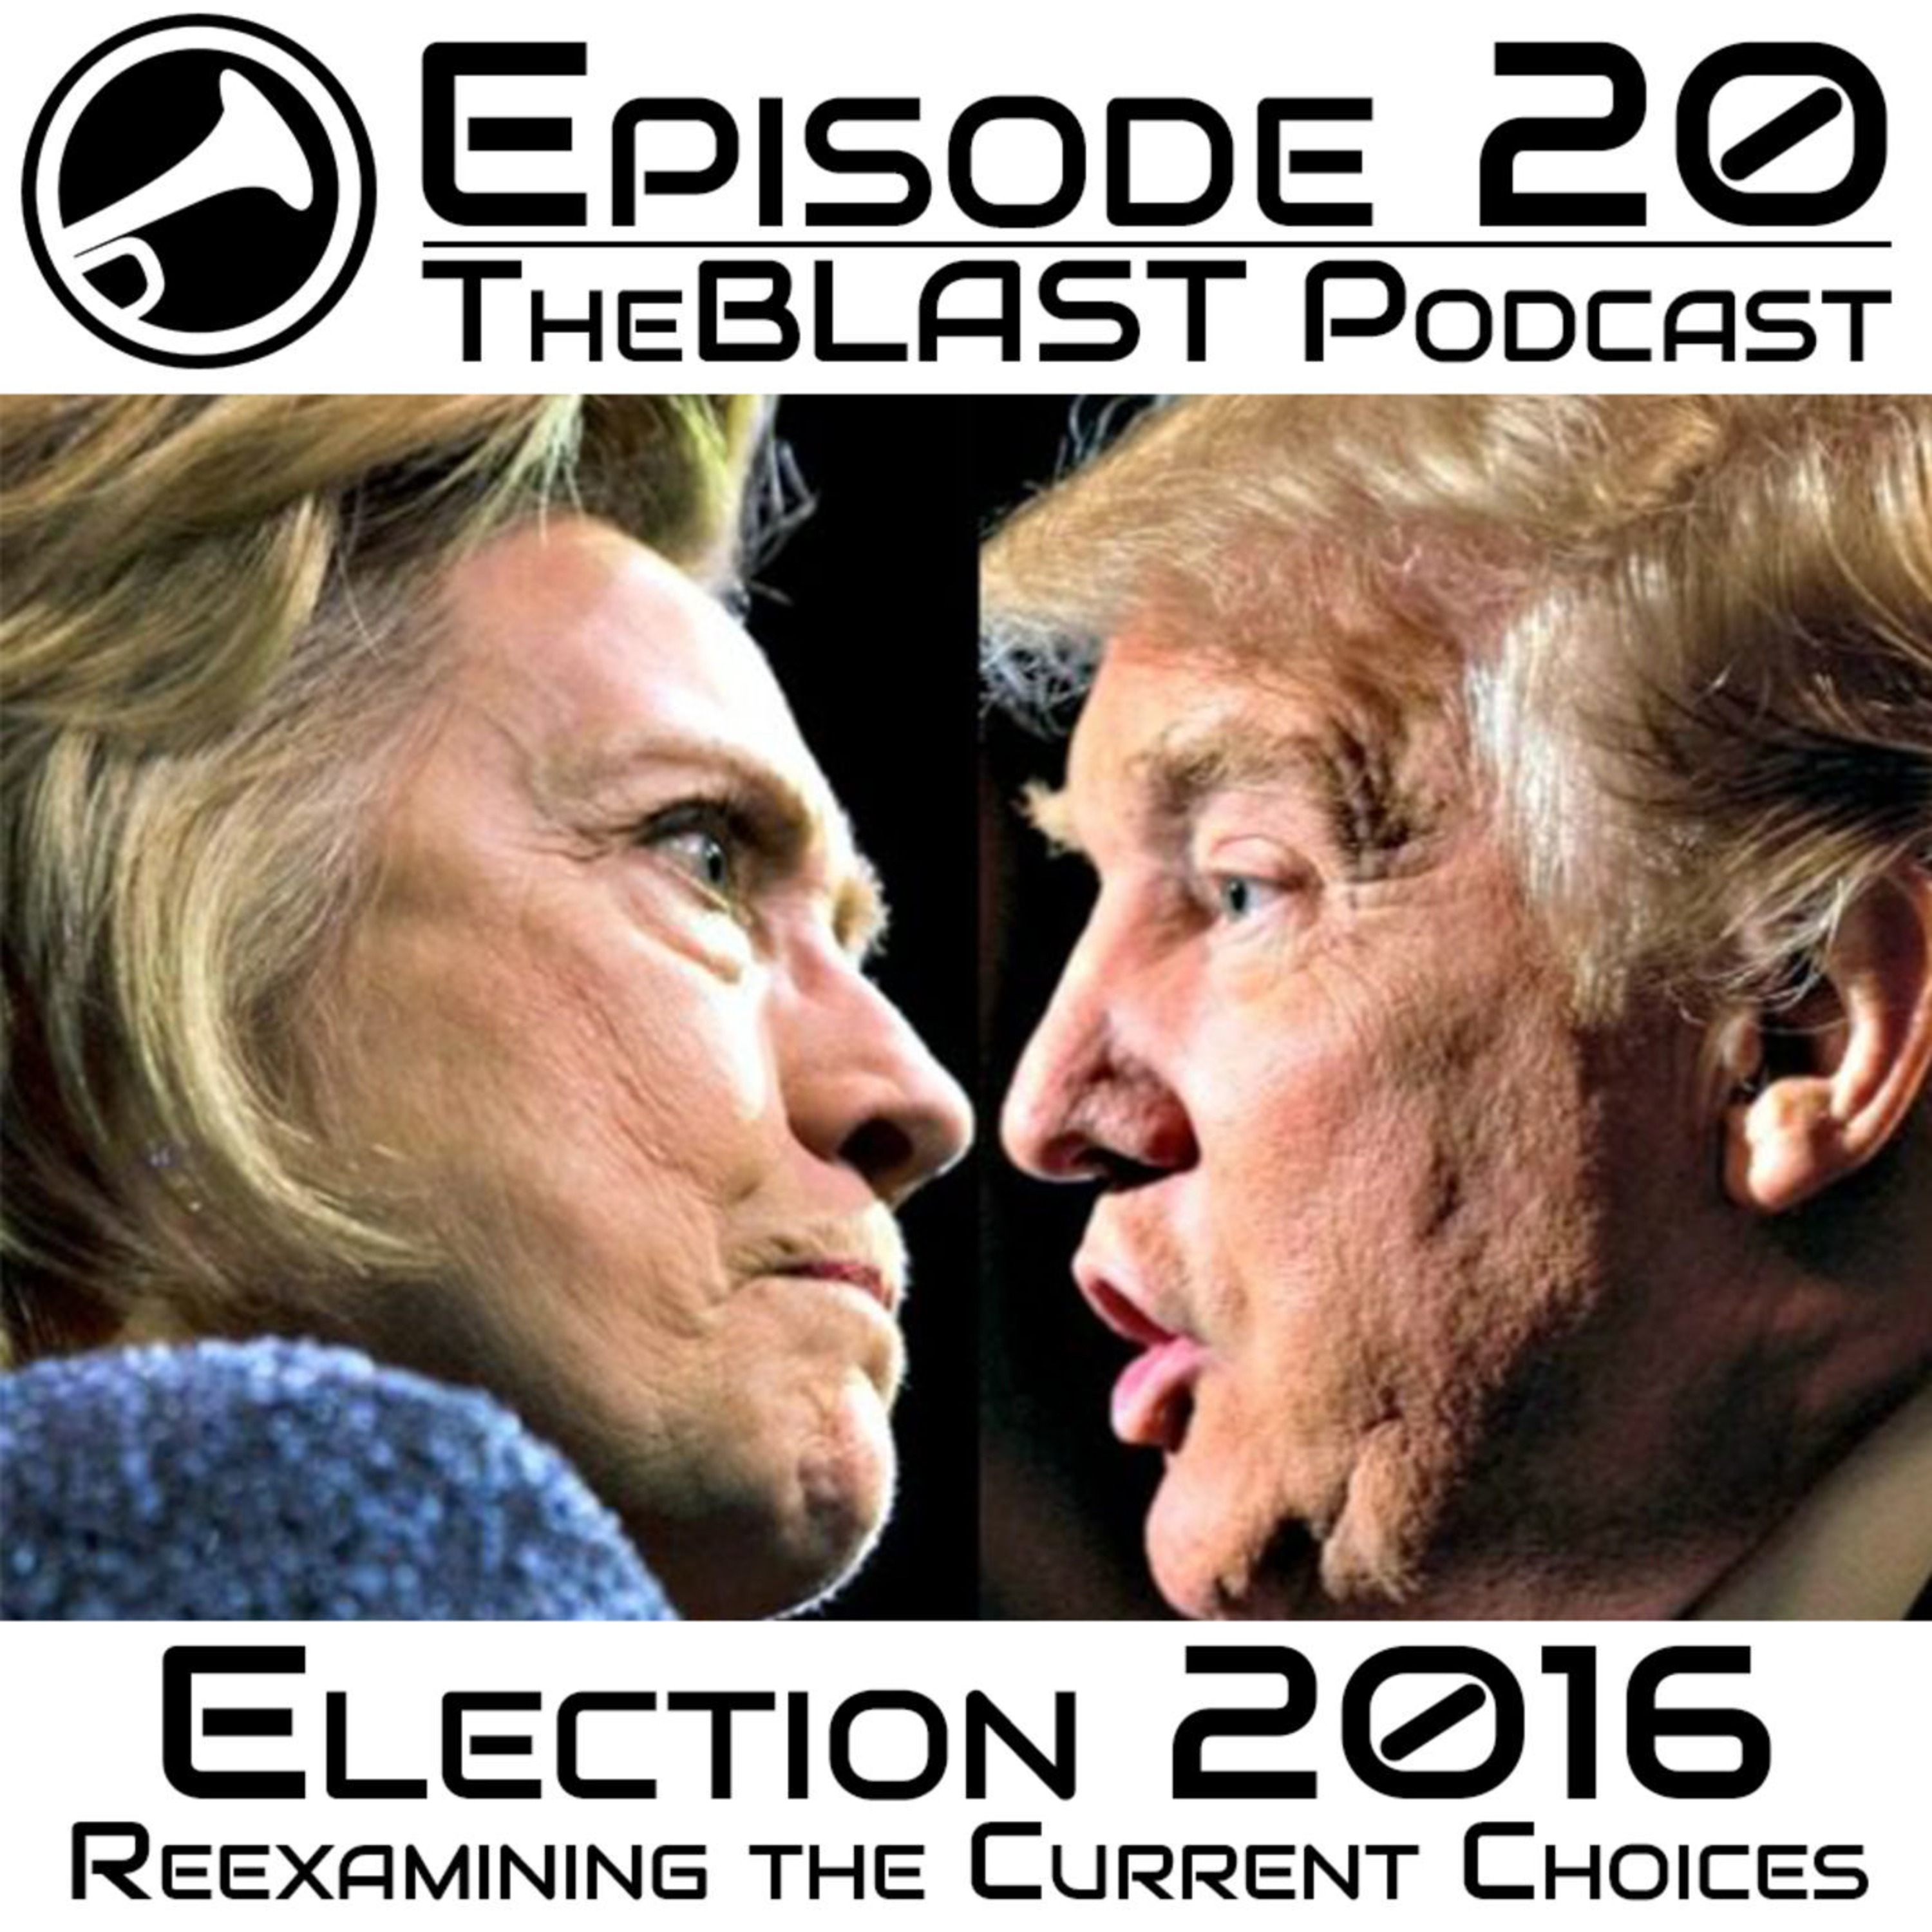 020 - Election 2016: Re-Examining the Current Choices